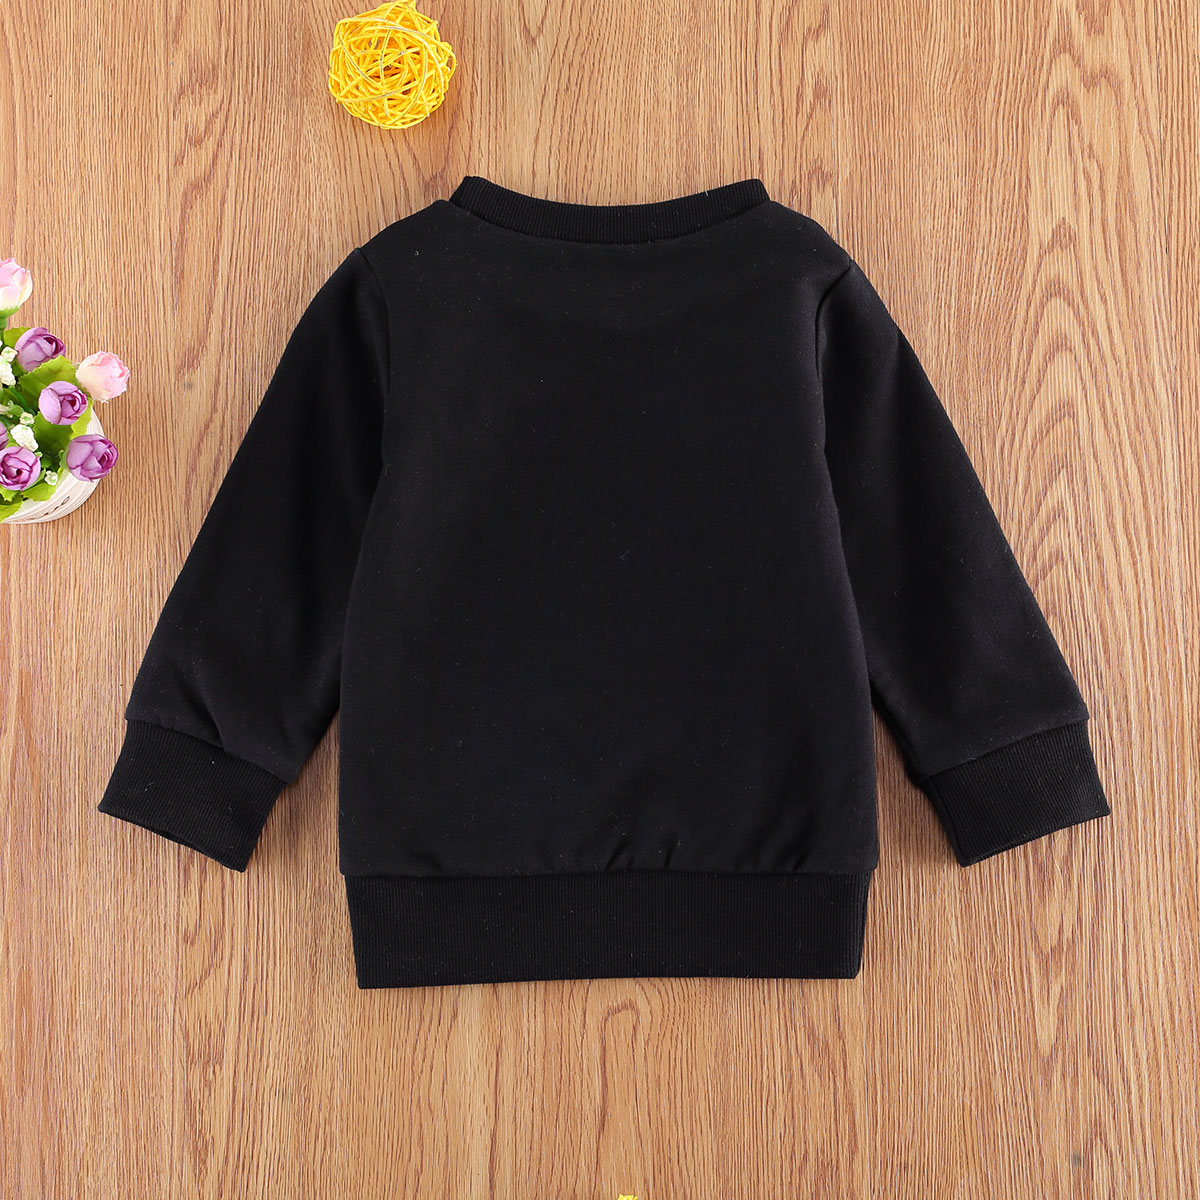 Pudcoco Newest Fashion Newborn Baby Clothes Long Sleeve Letter Print O-Neck Sweatshirt Tops Outfit Clothes For Girl Boy Bbay 4